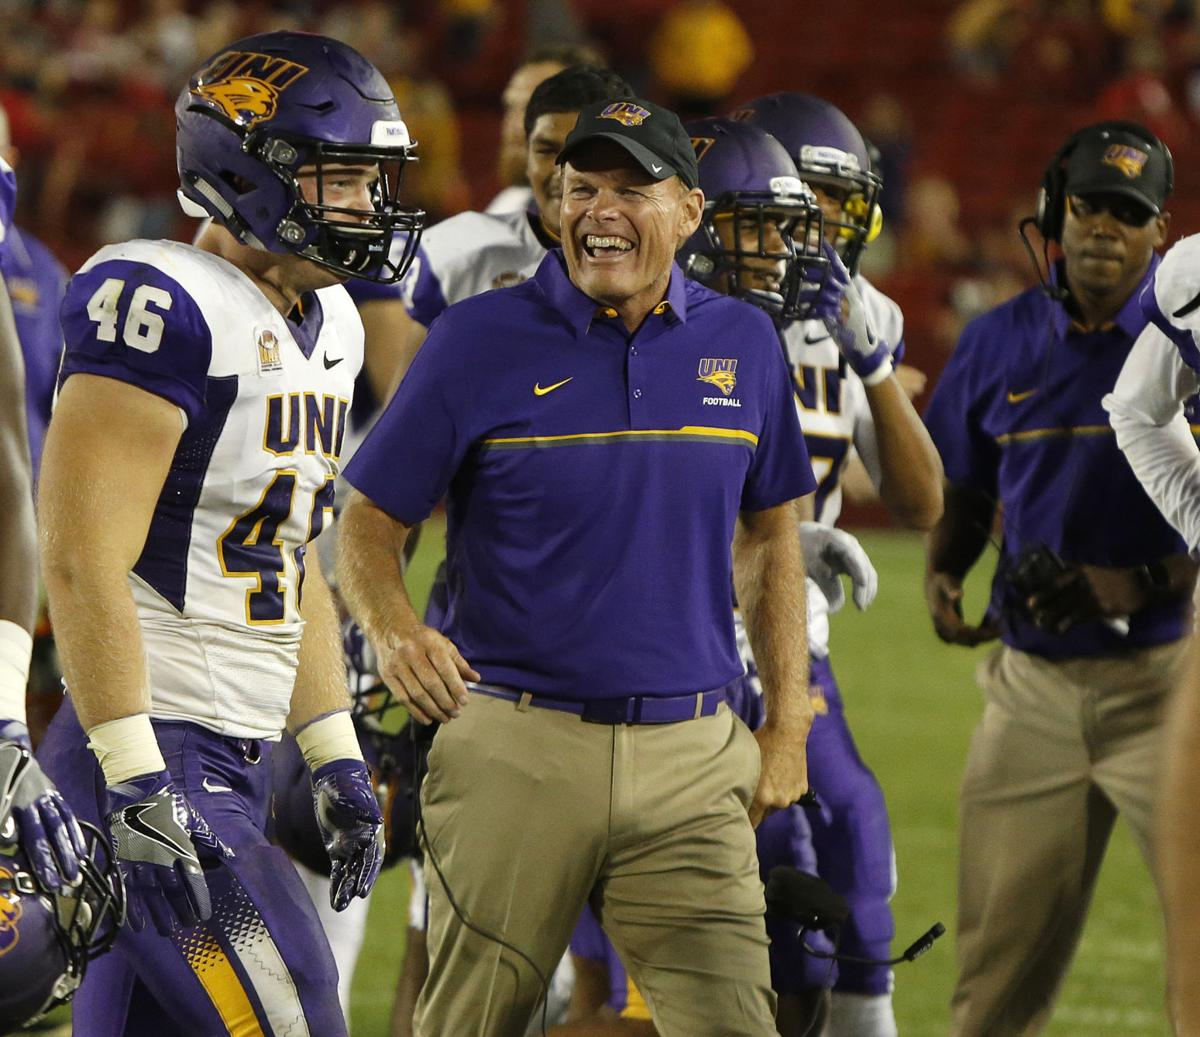 Northern Iowa head coach Mark Farley, center, congratulates his son Jared Farley, left, on his interception in the final seconds that sealed the Panthers' 25-20 win at Iowa State Saturday night. (Matthew Putney/Courier Photo Editor)